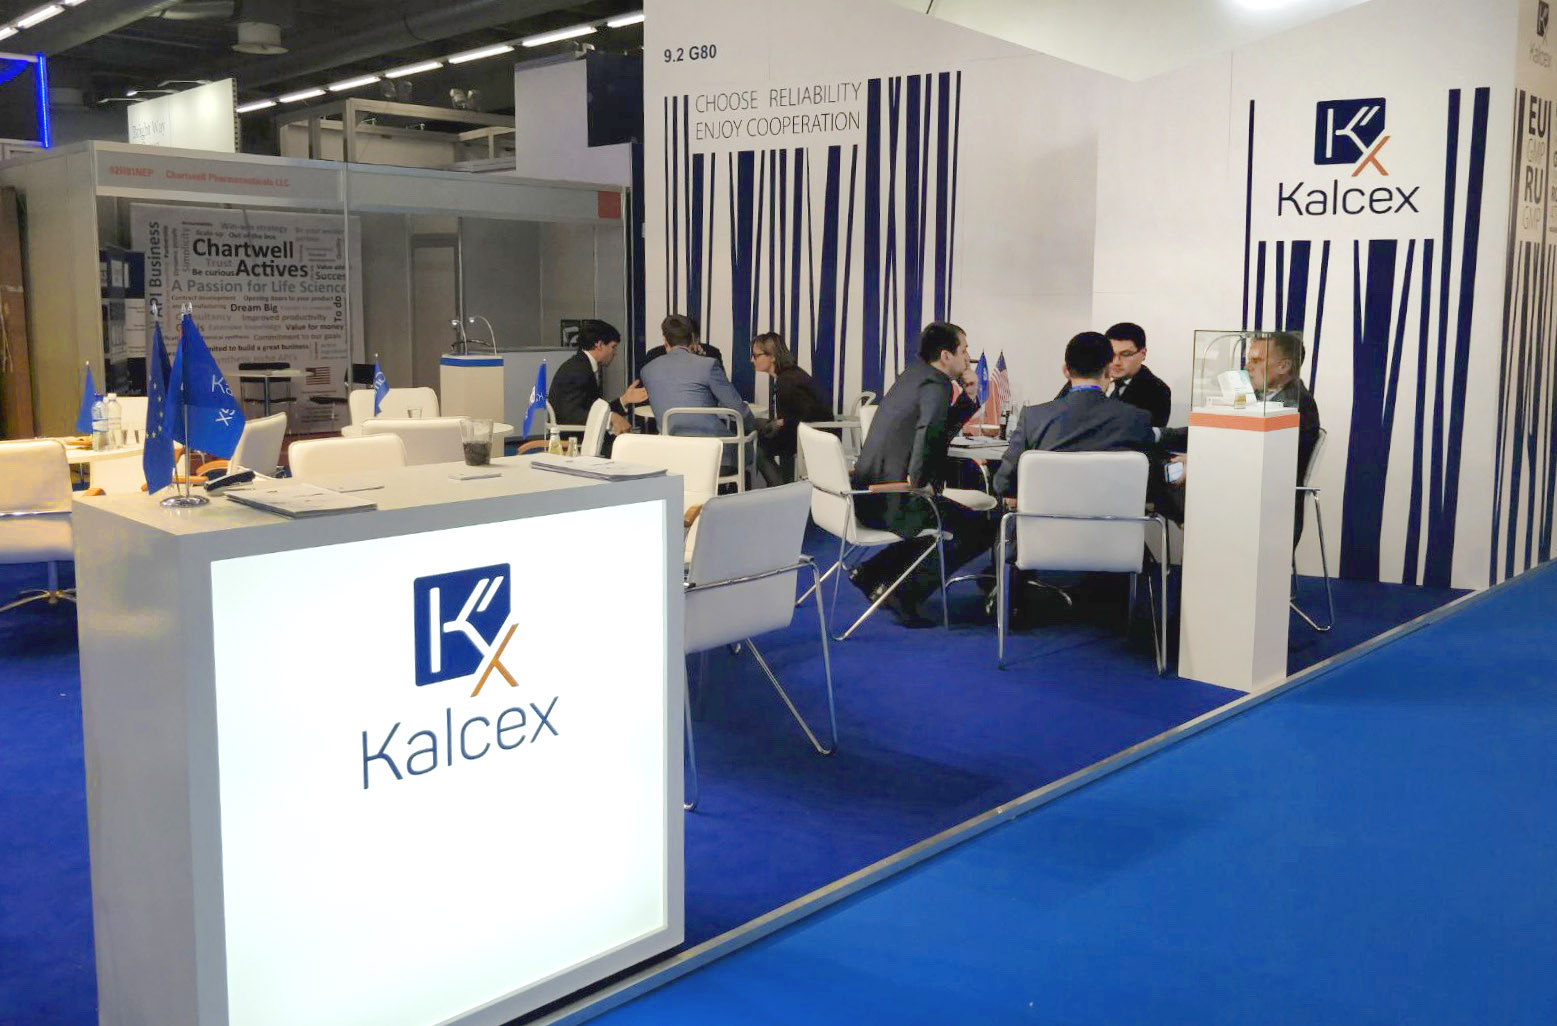 """Kalceks"" participated in the international exhibition ""CPhI Worldwide 2017"" expanding the global reach."